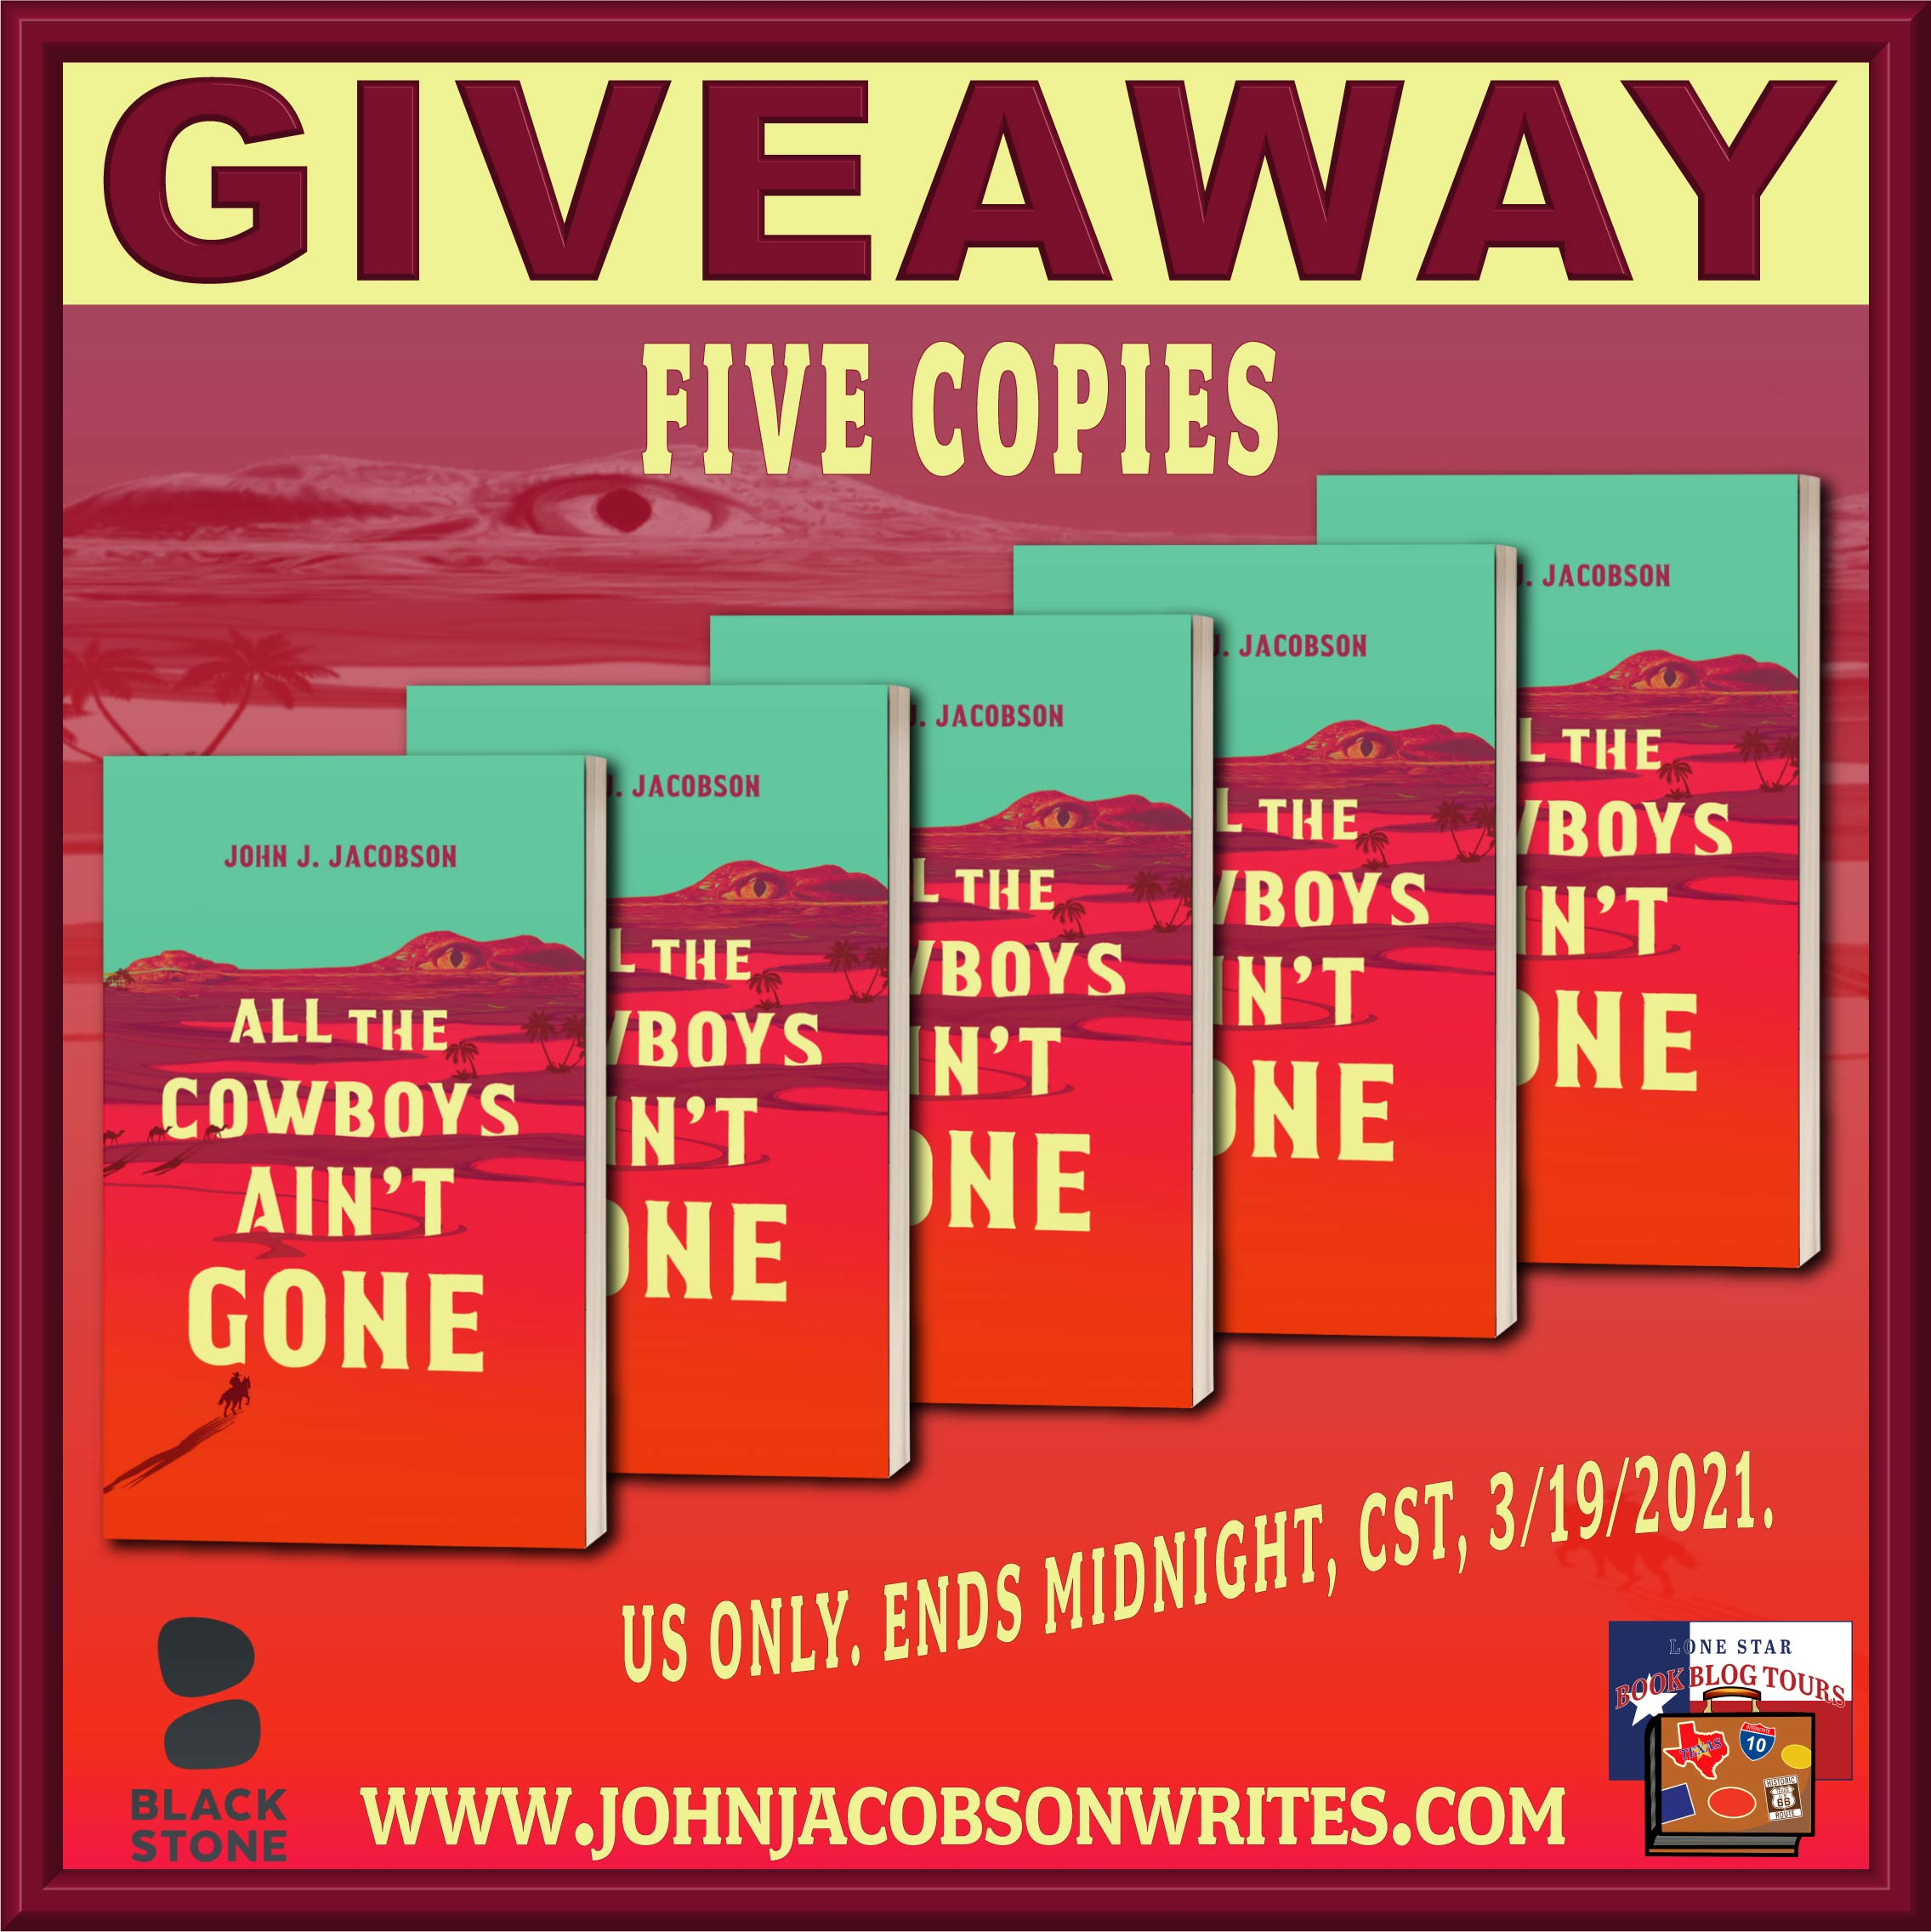 Review: All the Cowboys Ain't Gone, by John J. Jacobson – Giveaway